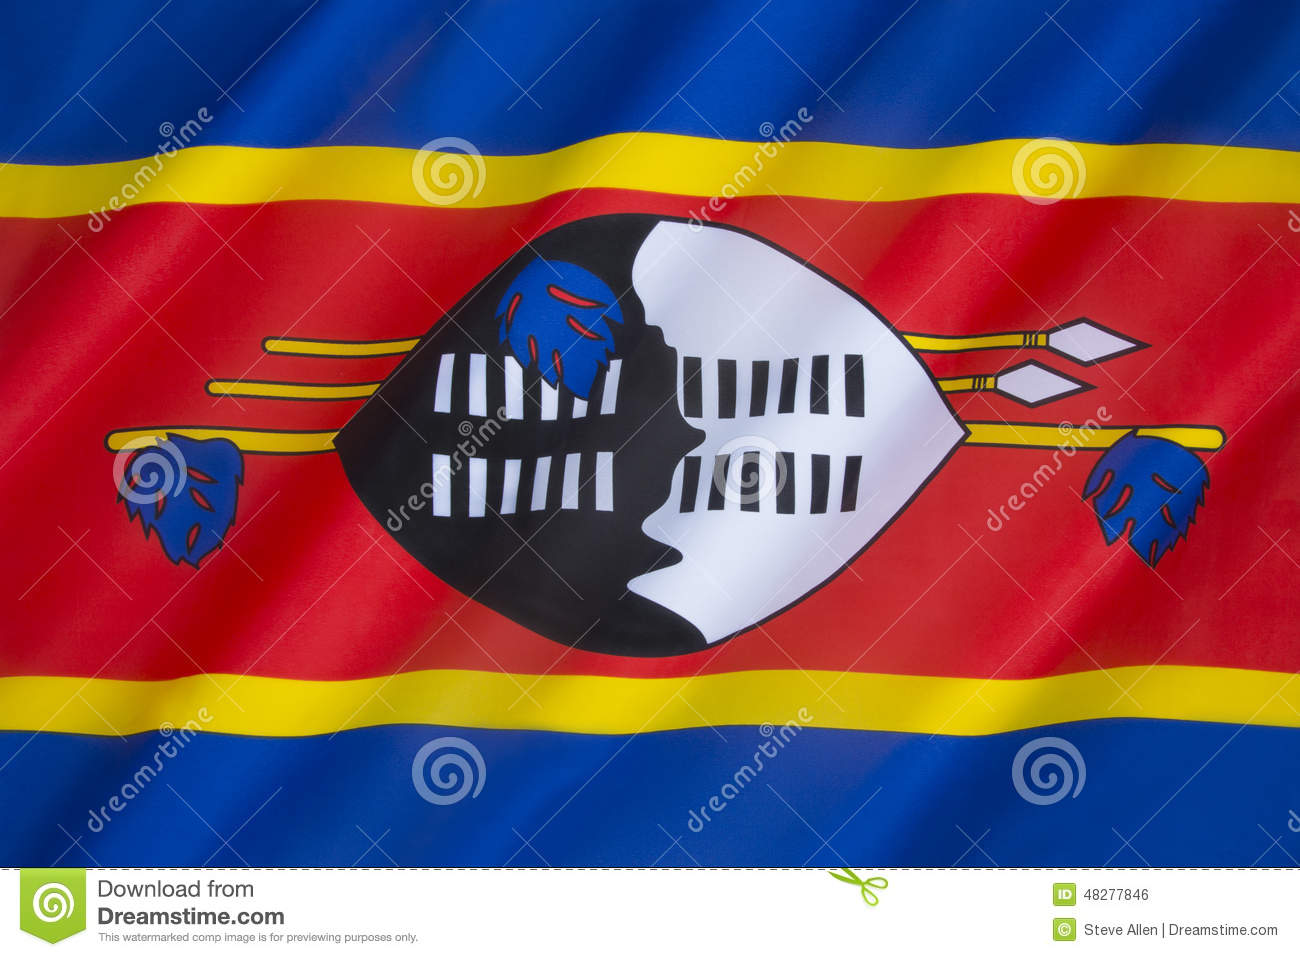 what does the swaziland flag mean